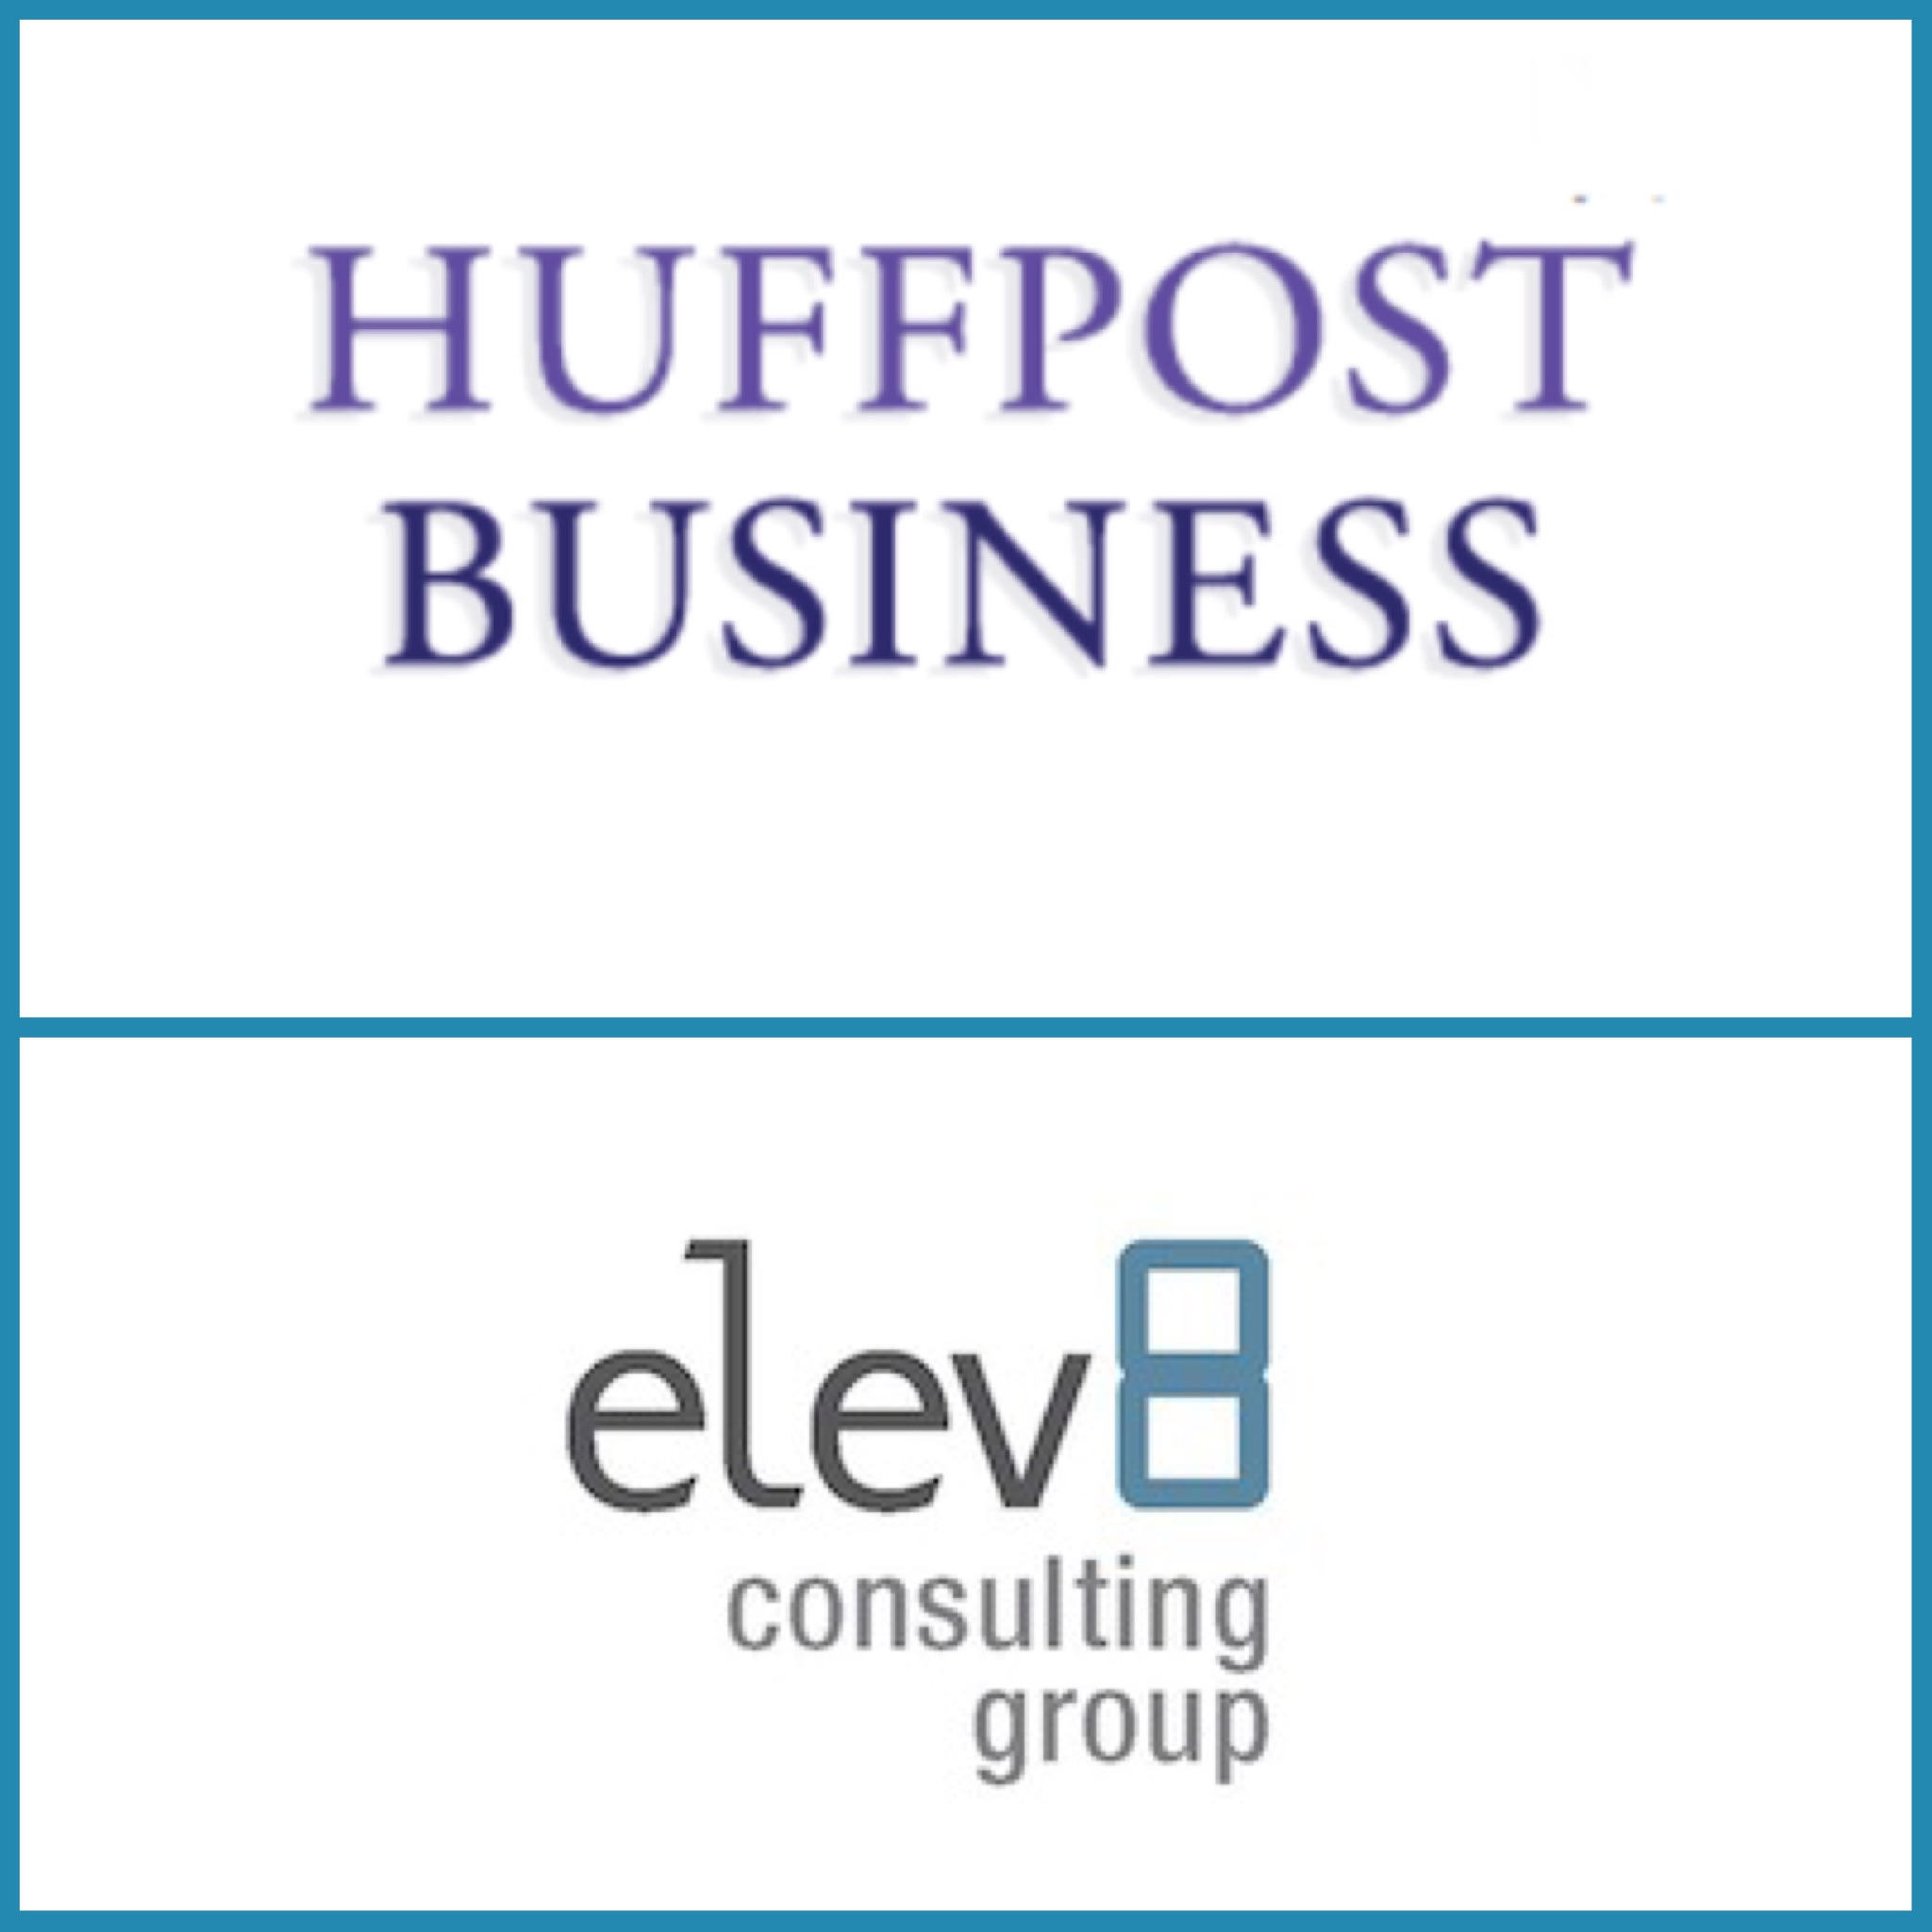 Elev8 CEO And Founder Angela Delmedico Talks Time Management In The Huffington Post